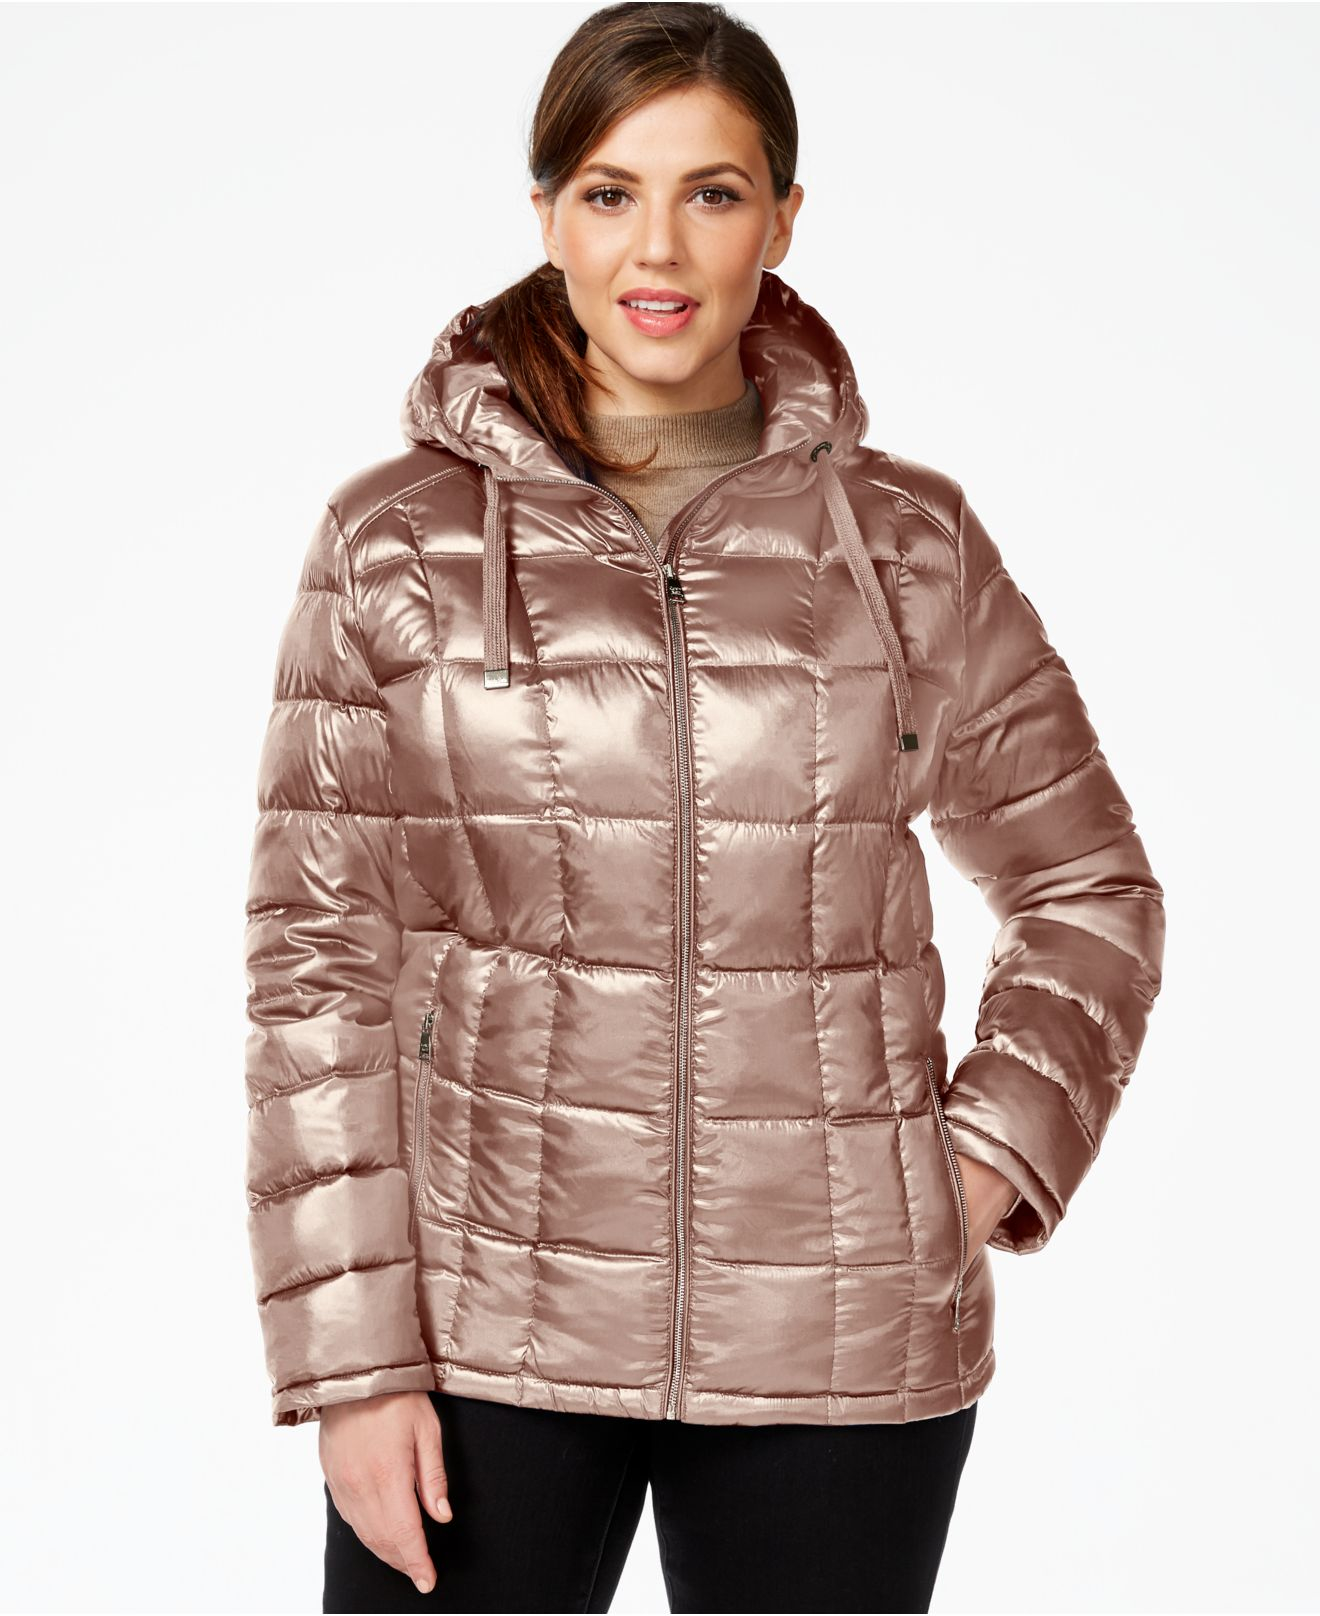 Brown Puffer Coat Fashion Women S Coat 2017